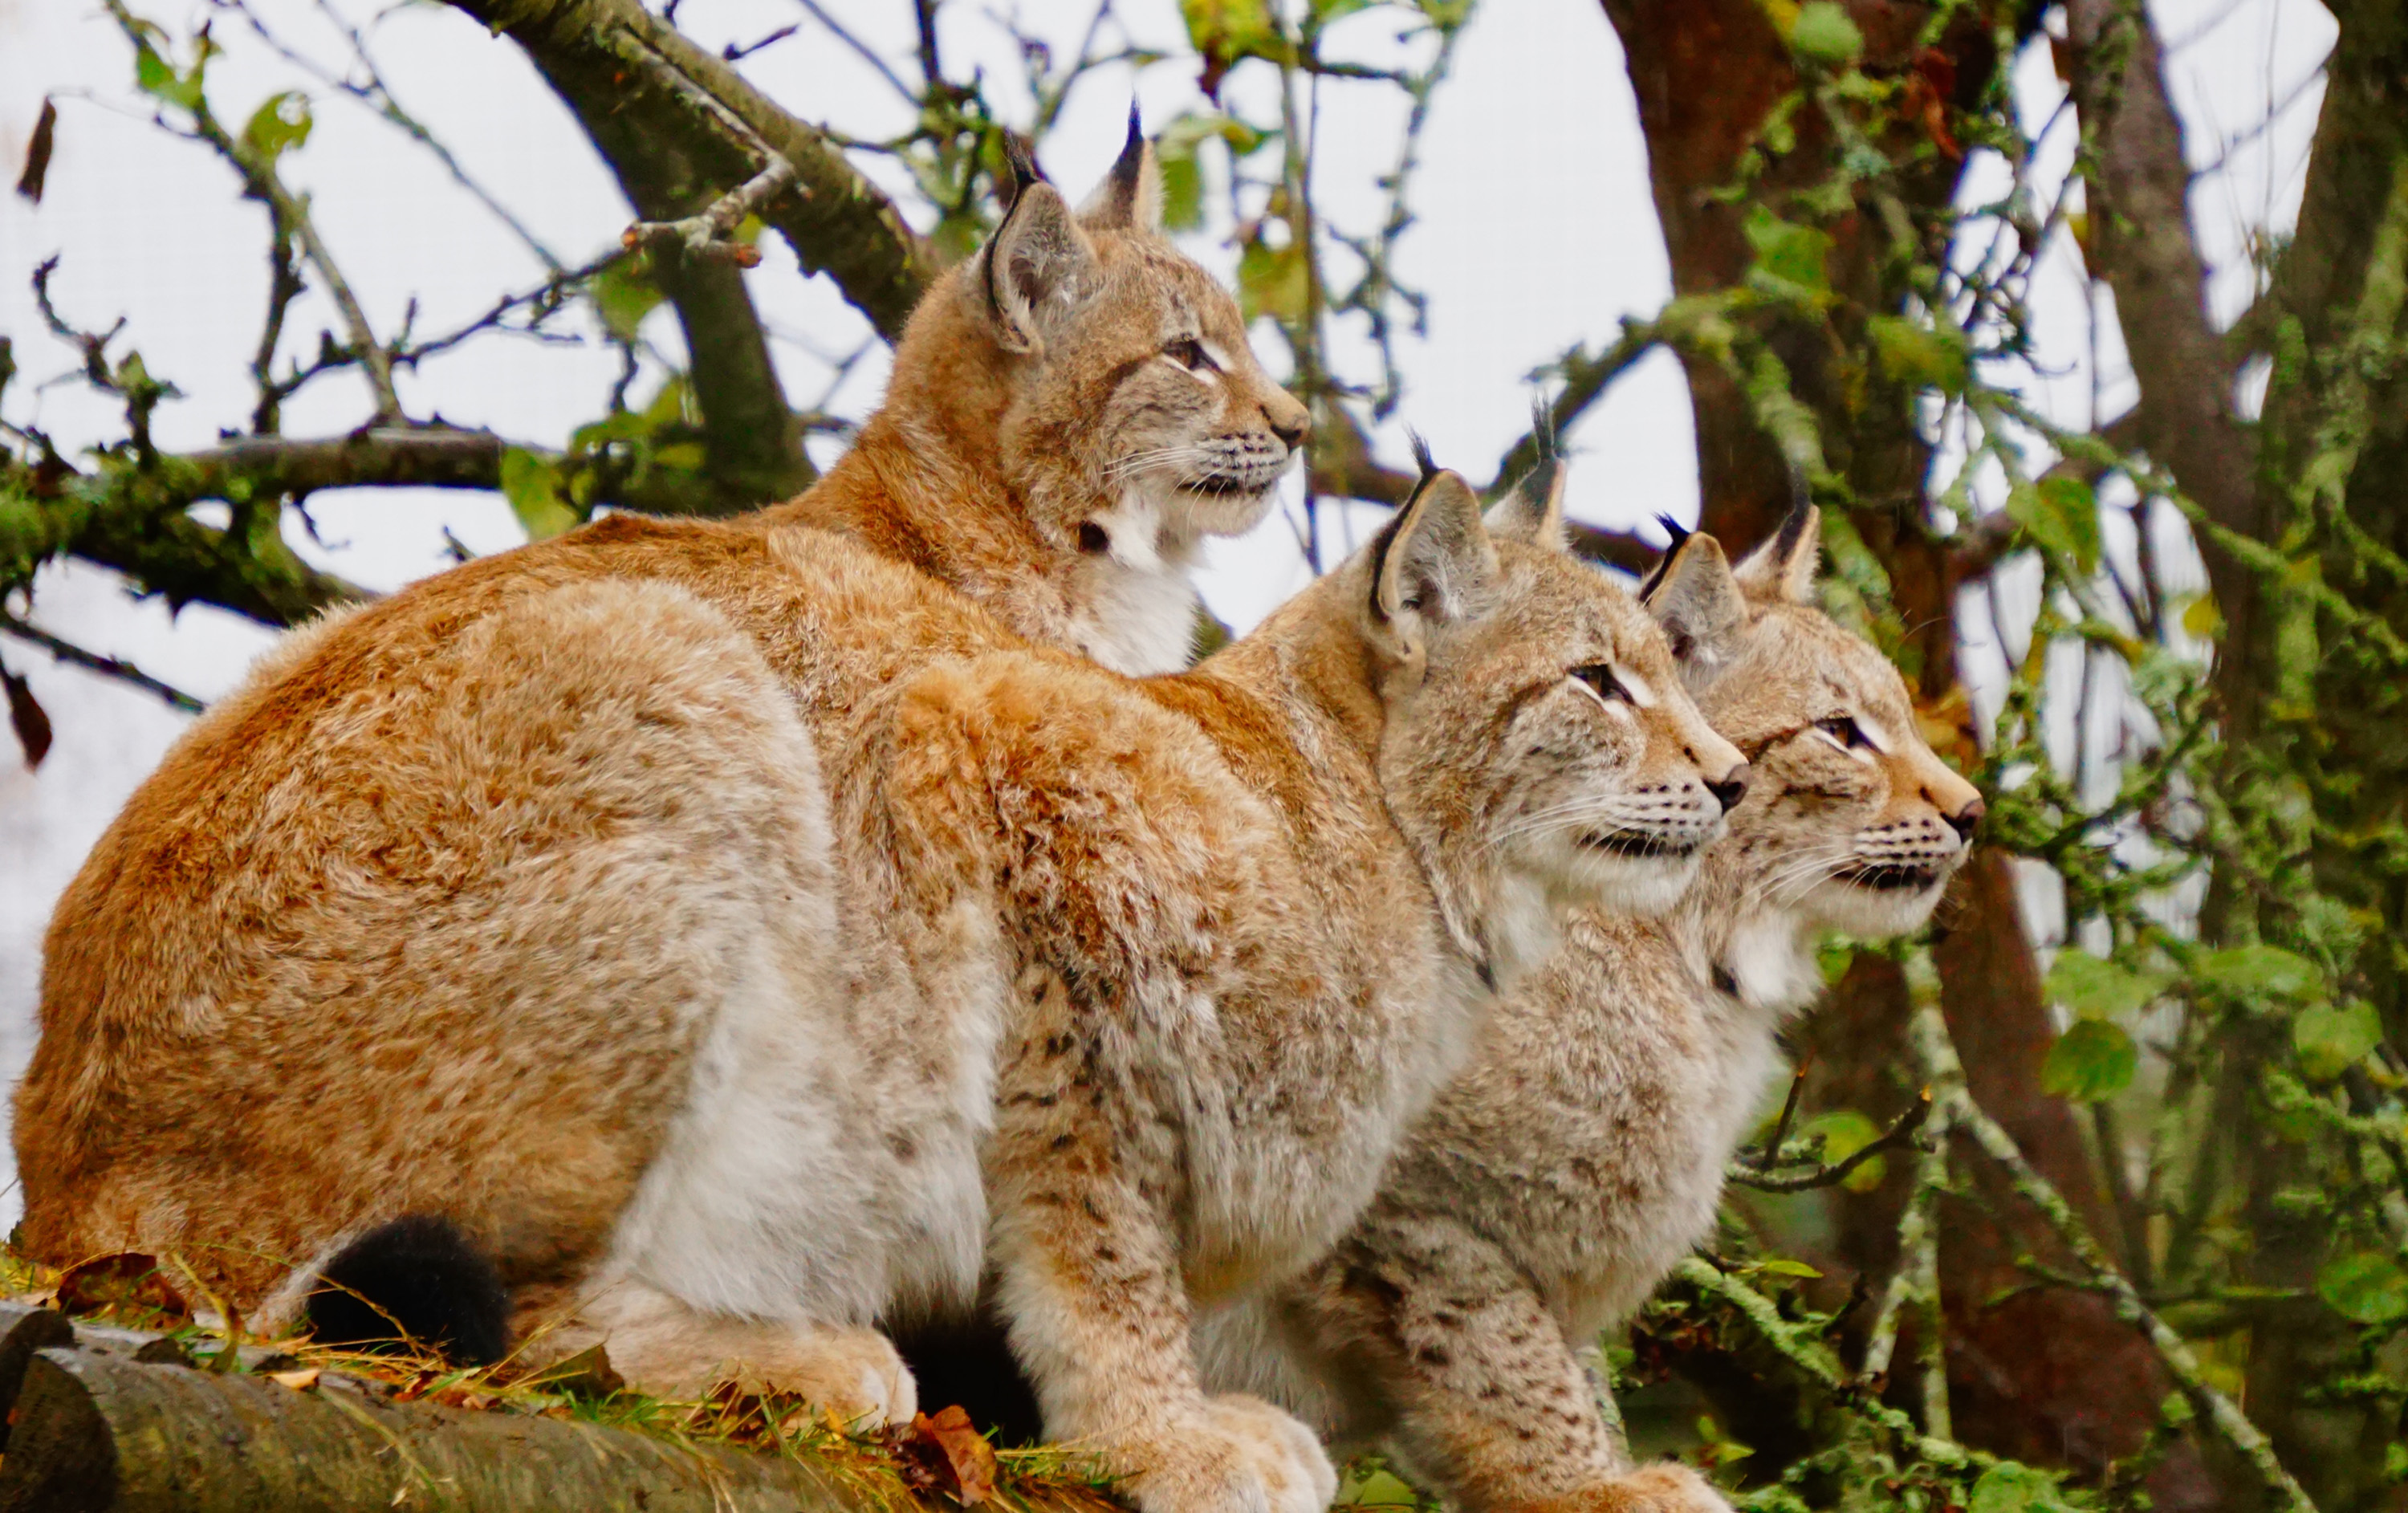 Purrfect lynx triplets treble in size